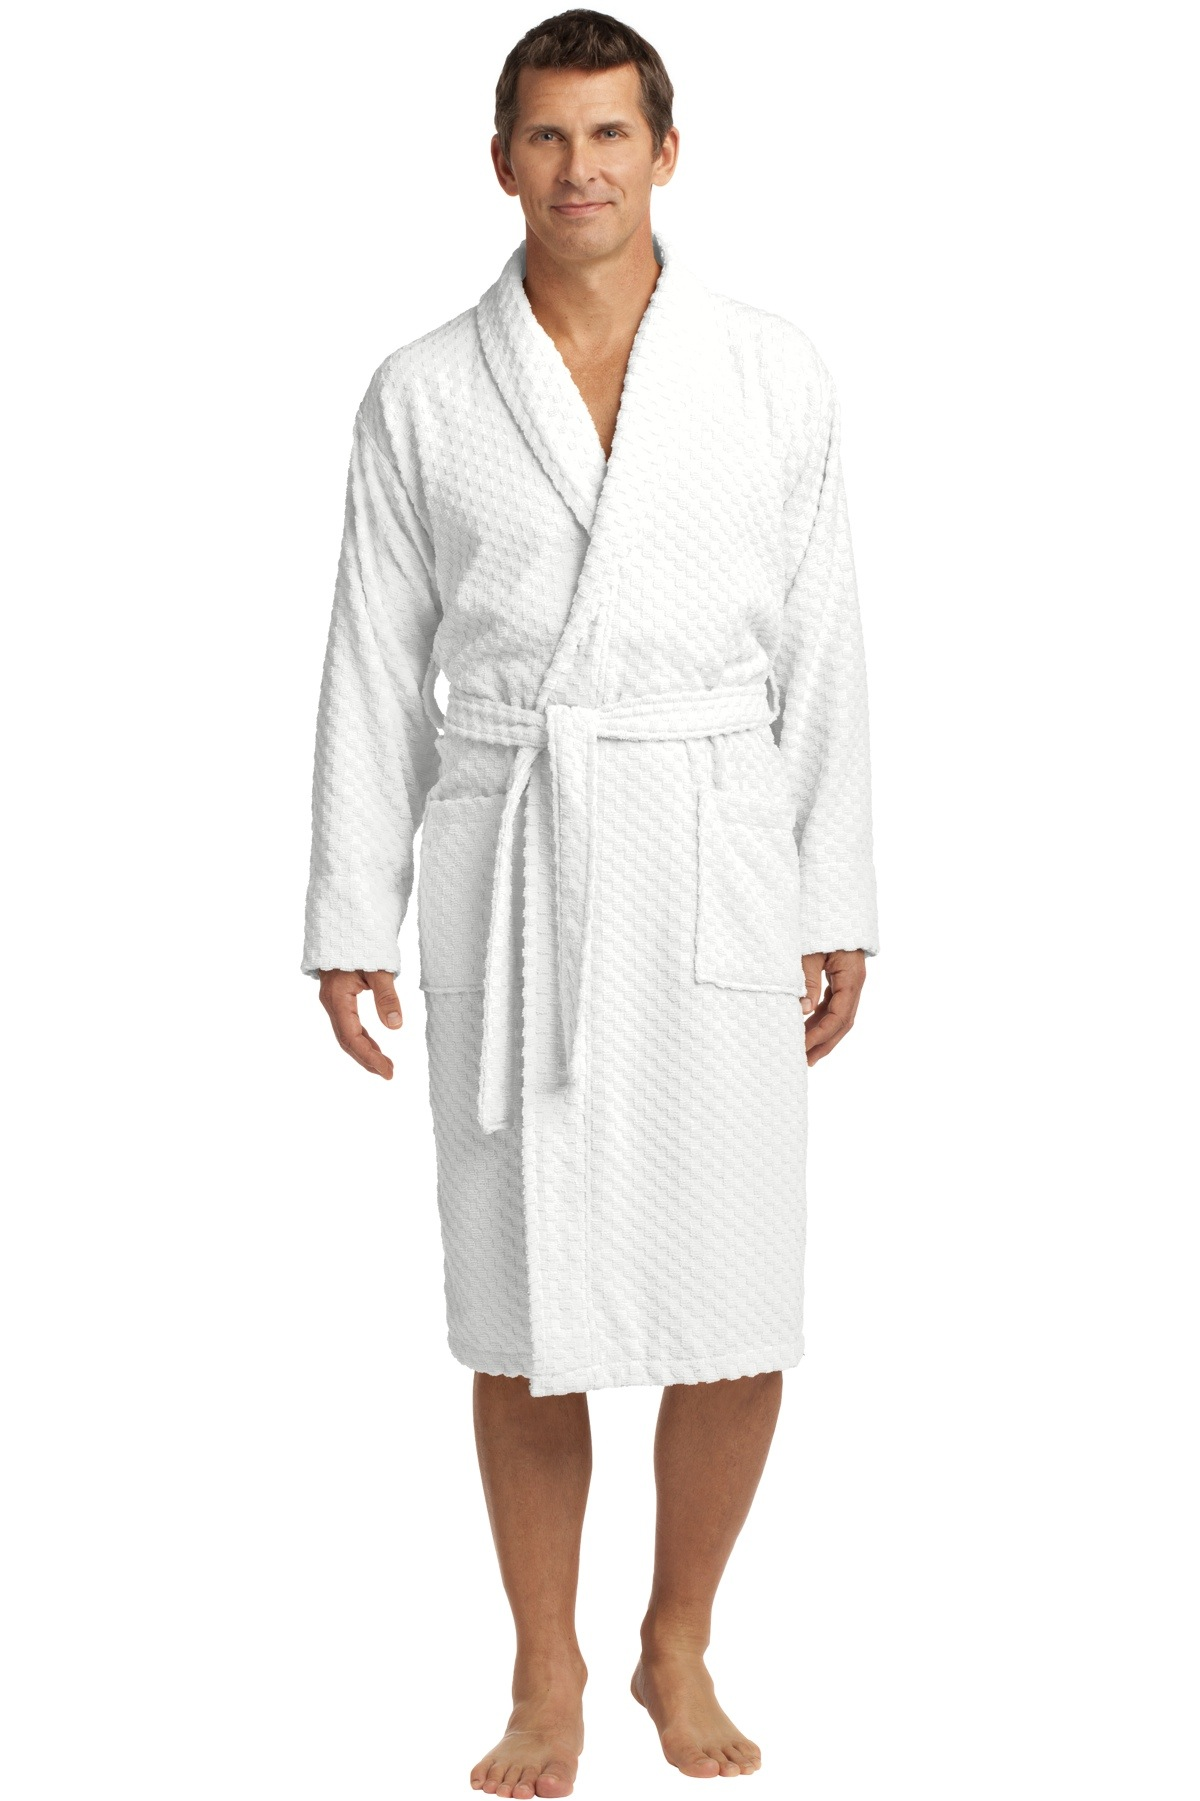 R103 Port Authority Checkered Terry Shawl Collar Robe